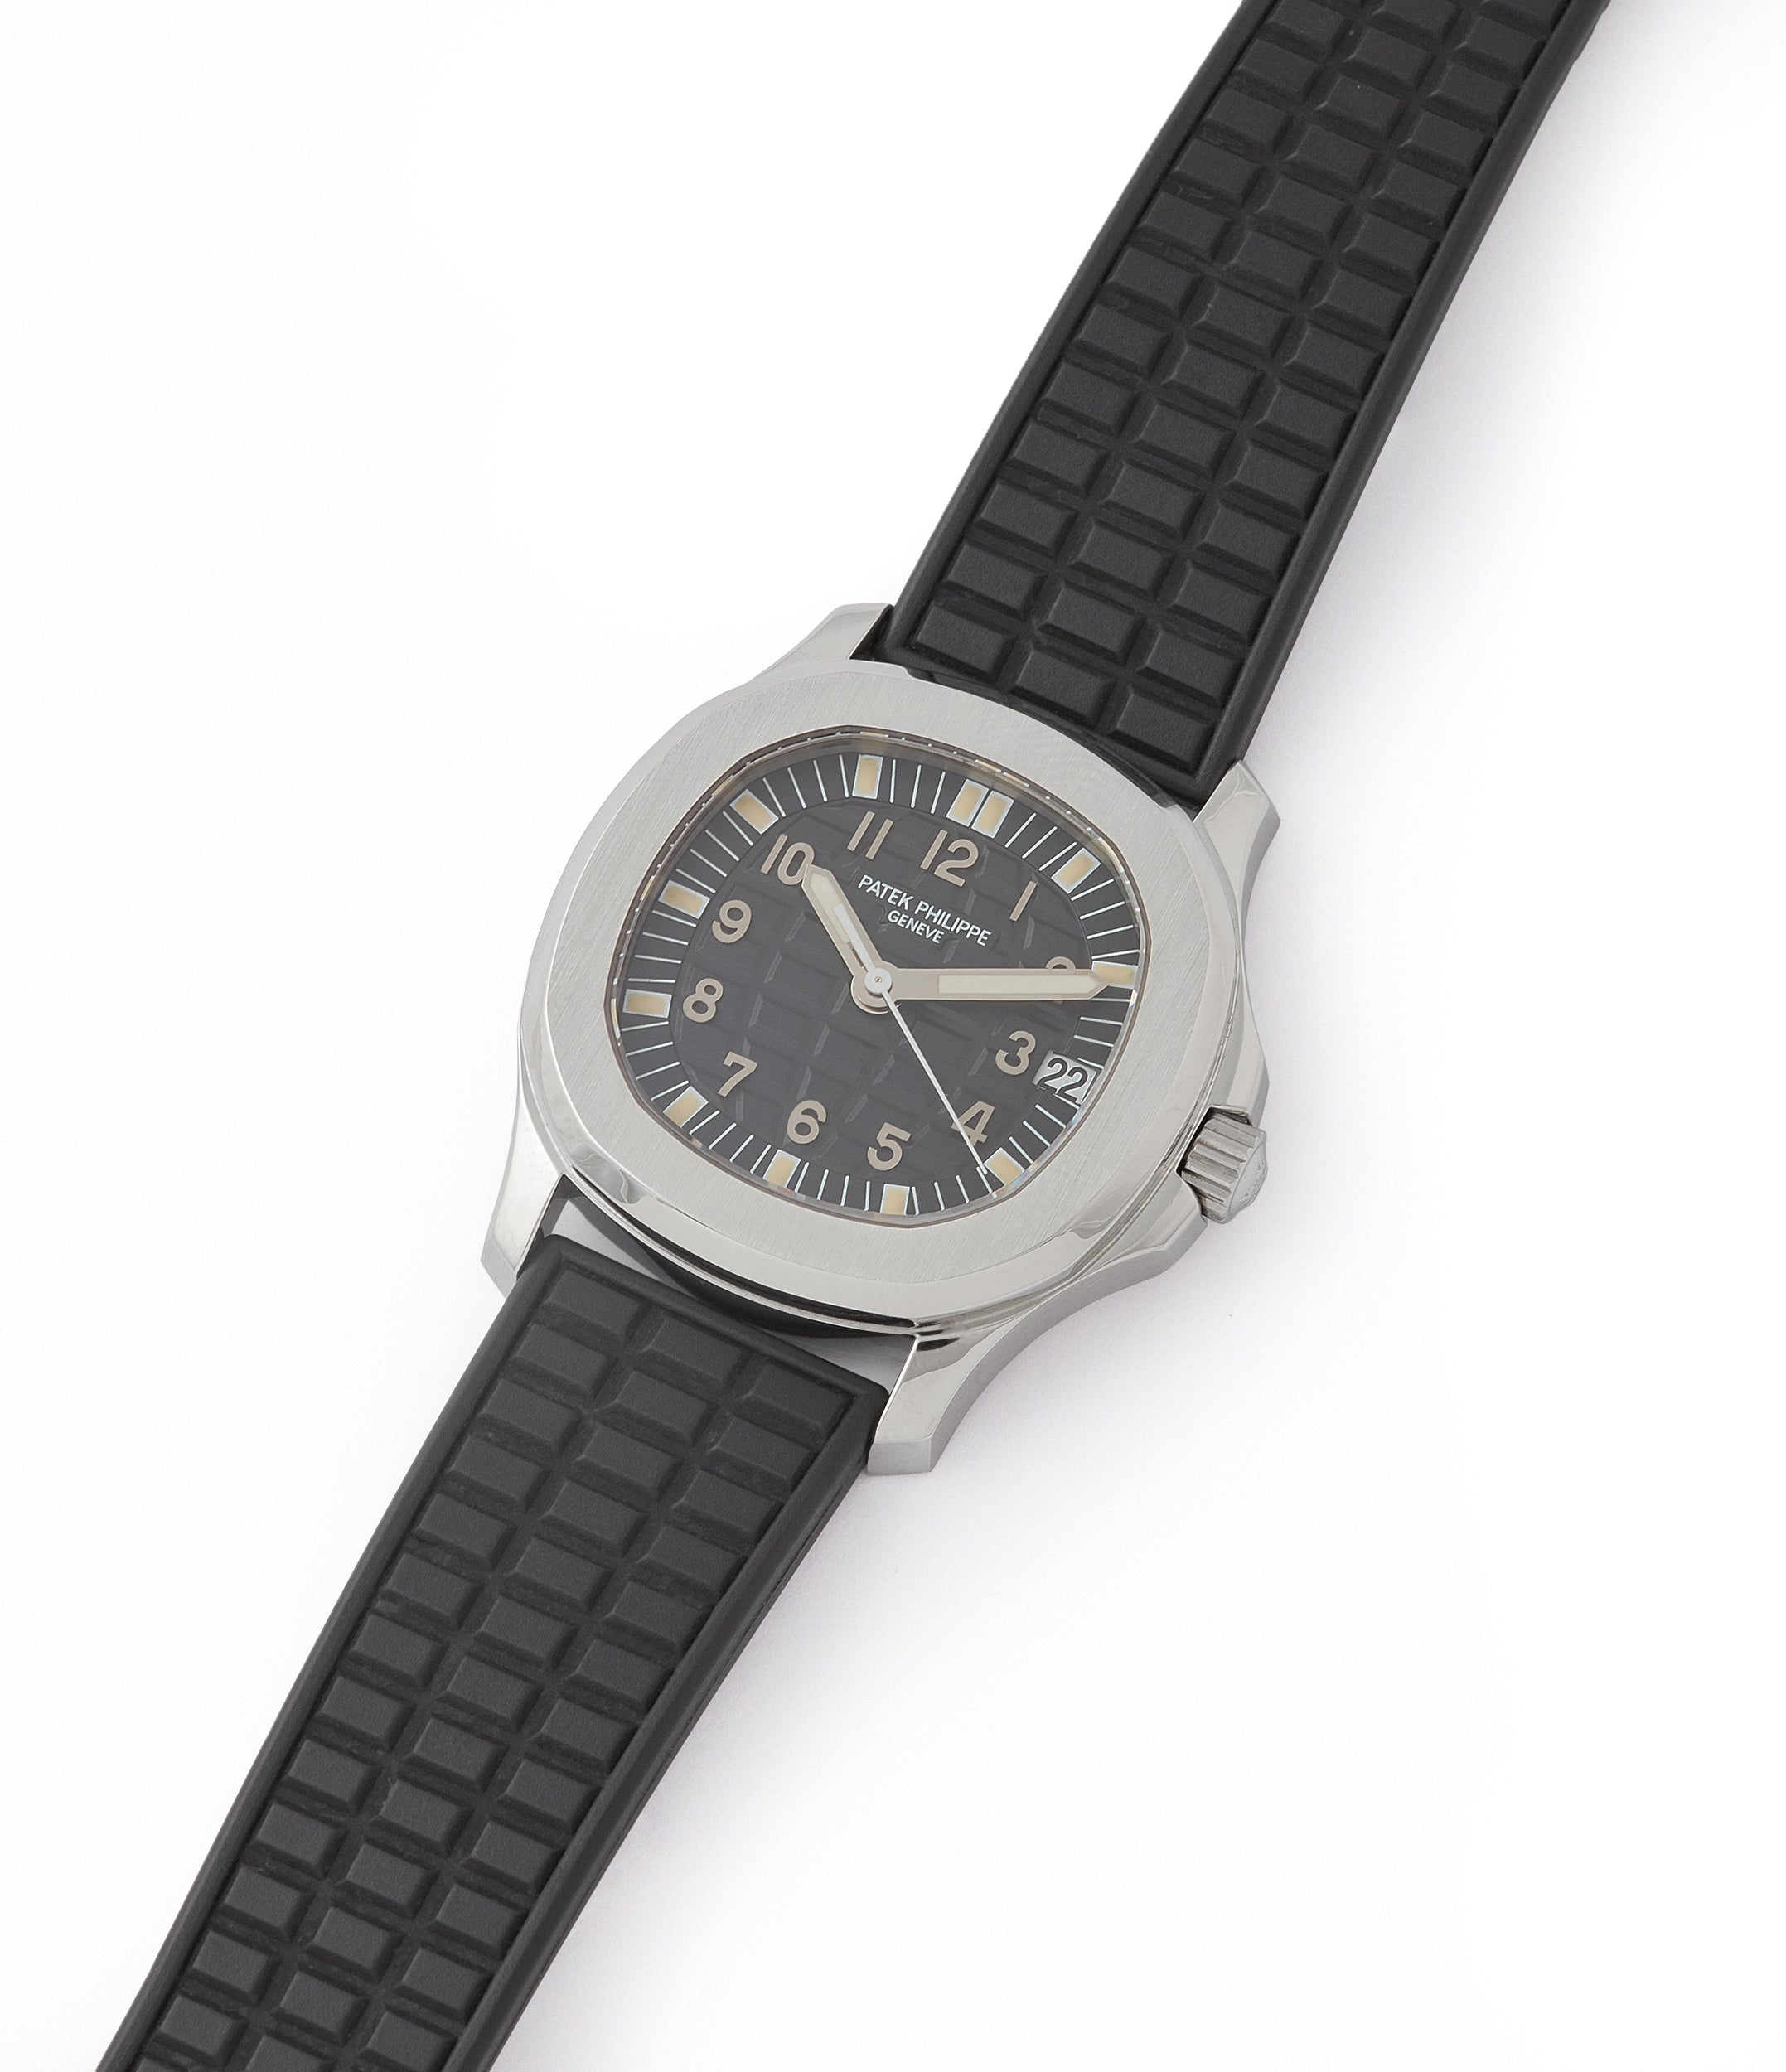 selling Patek Philippe Aquanaut 5066A-001 steel sport watch rubber strap for sale online at A Colleted Man London UK specialist of rare watches